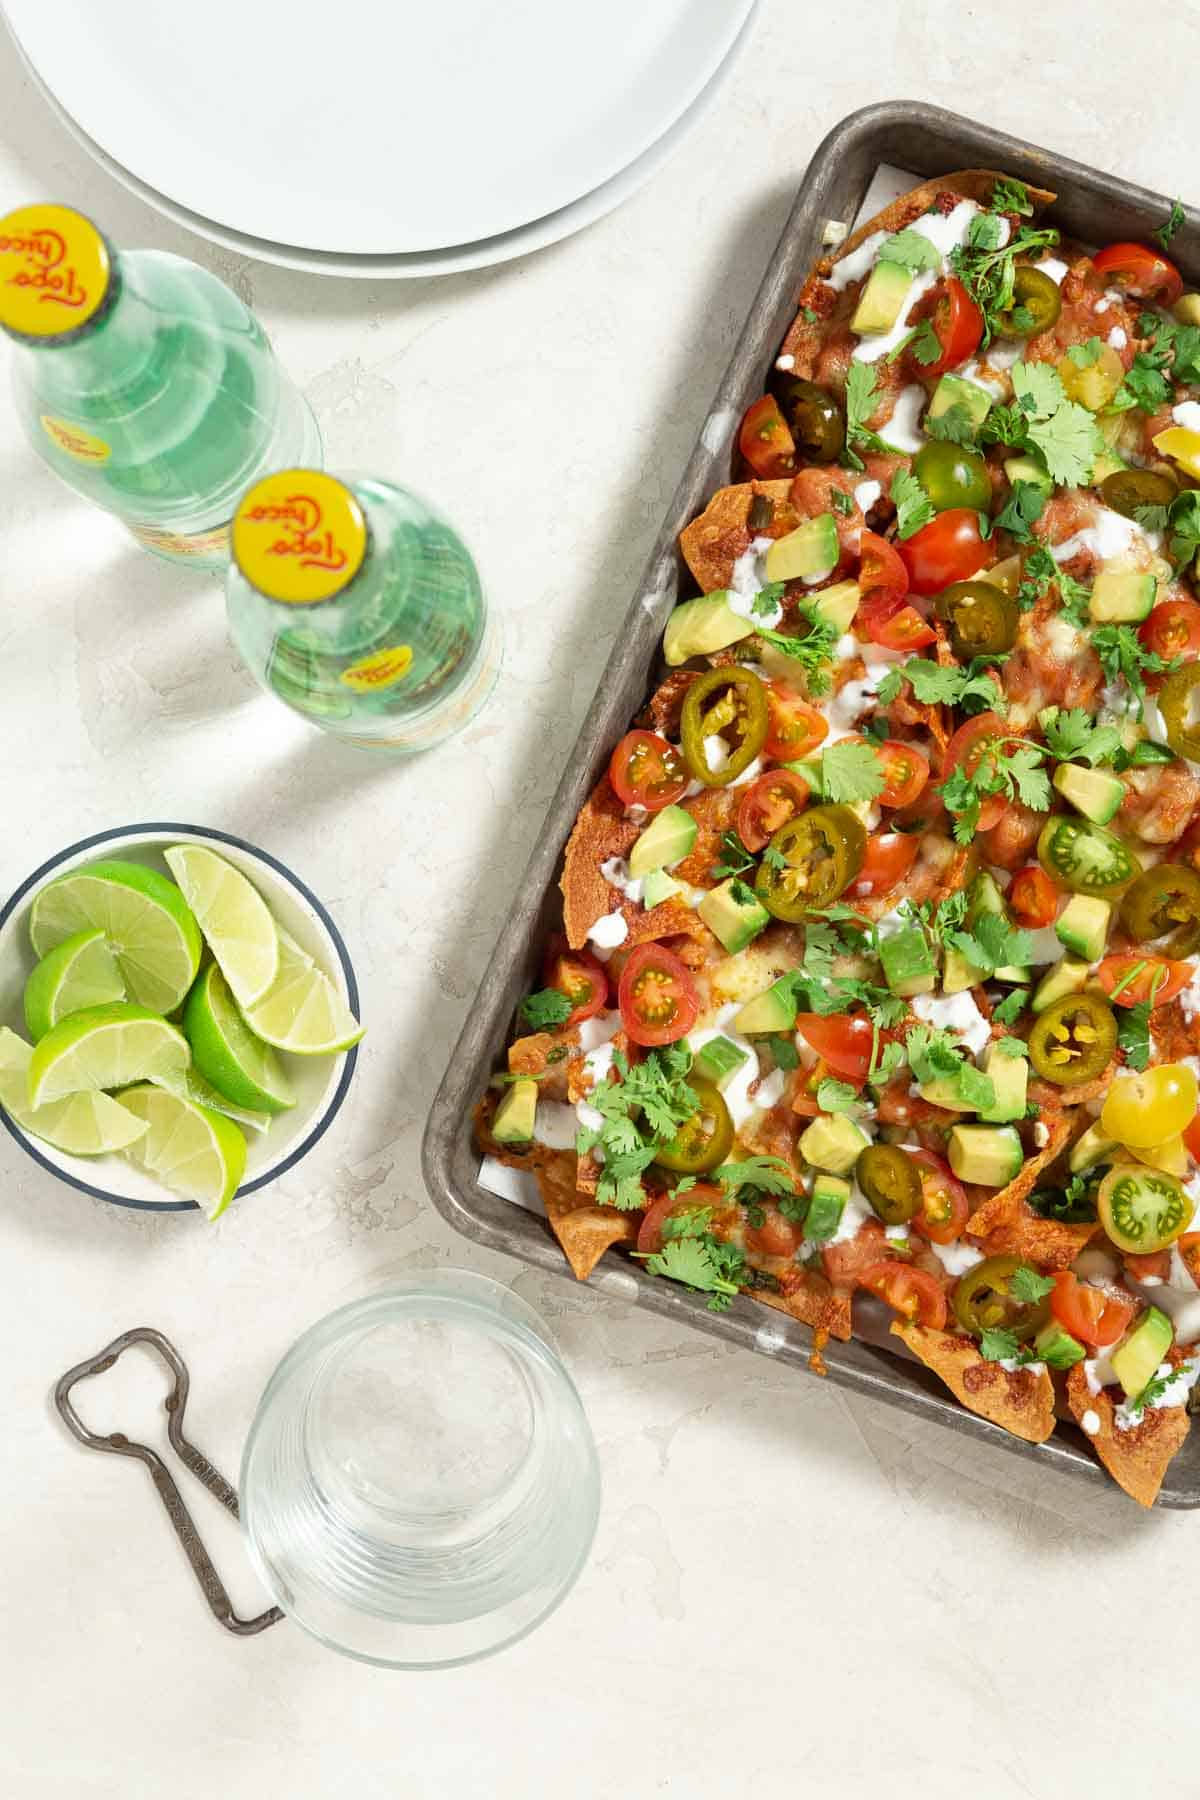 Cooked vegetarian nachos in a sheet pan with lime wedges and bottled drinks on the side